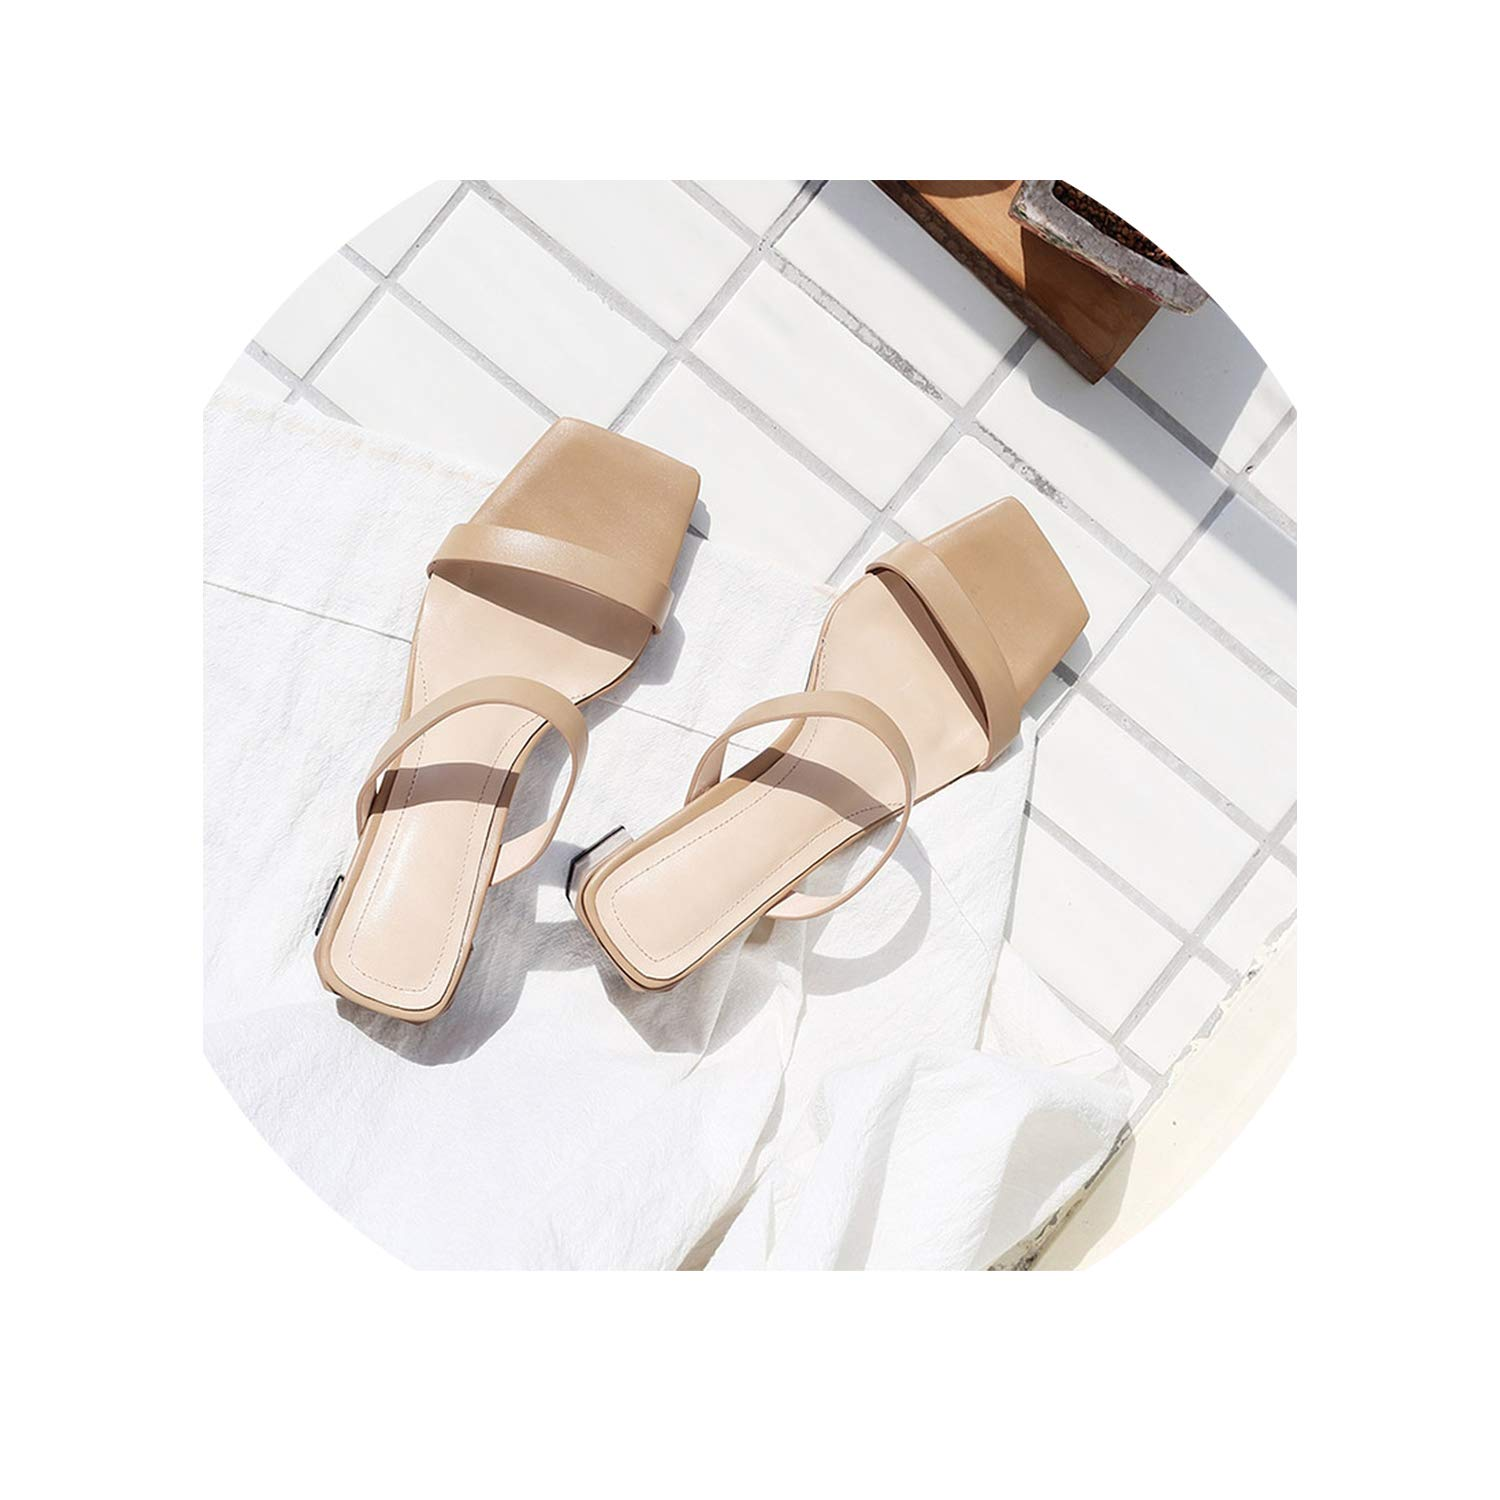 Beige Fairly Thick Heels Slippers Women Summer Ladies Square Toe Mules shoes Real Leather Slides